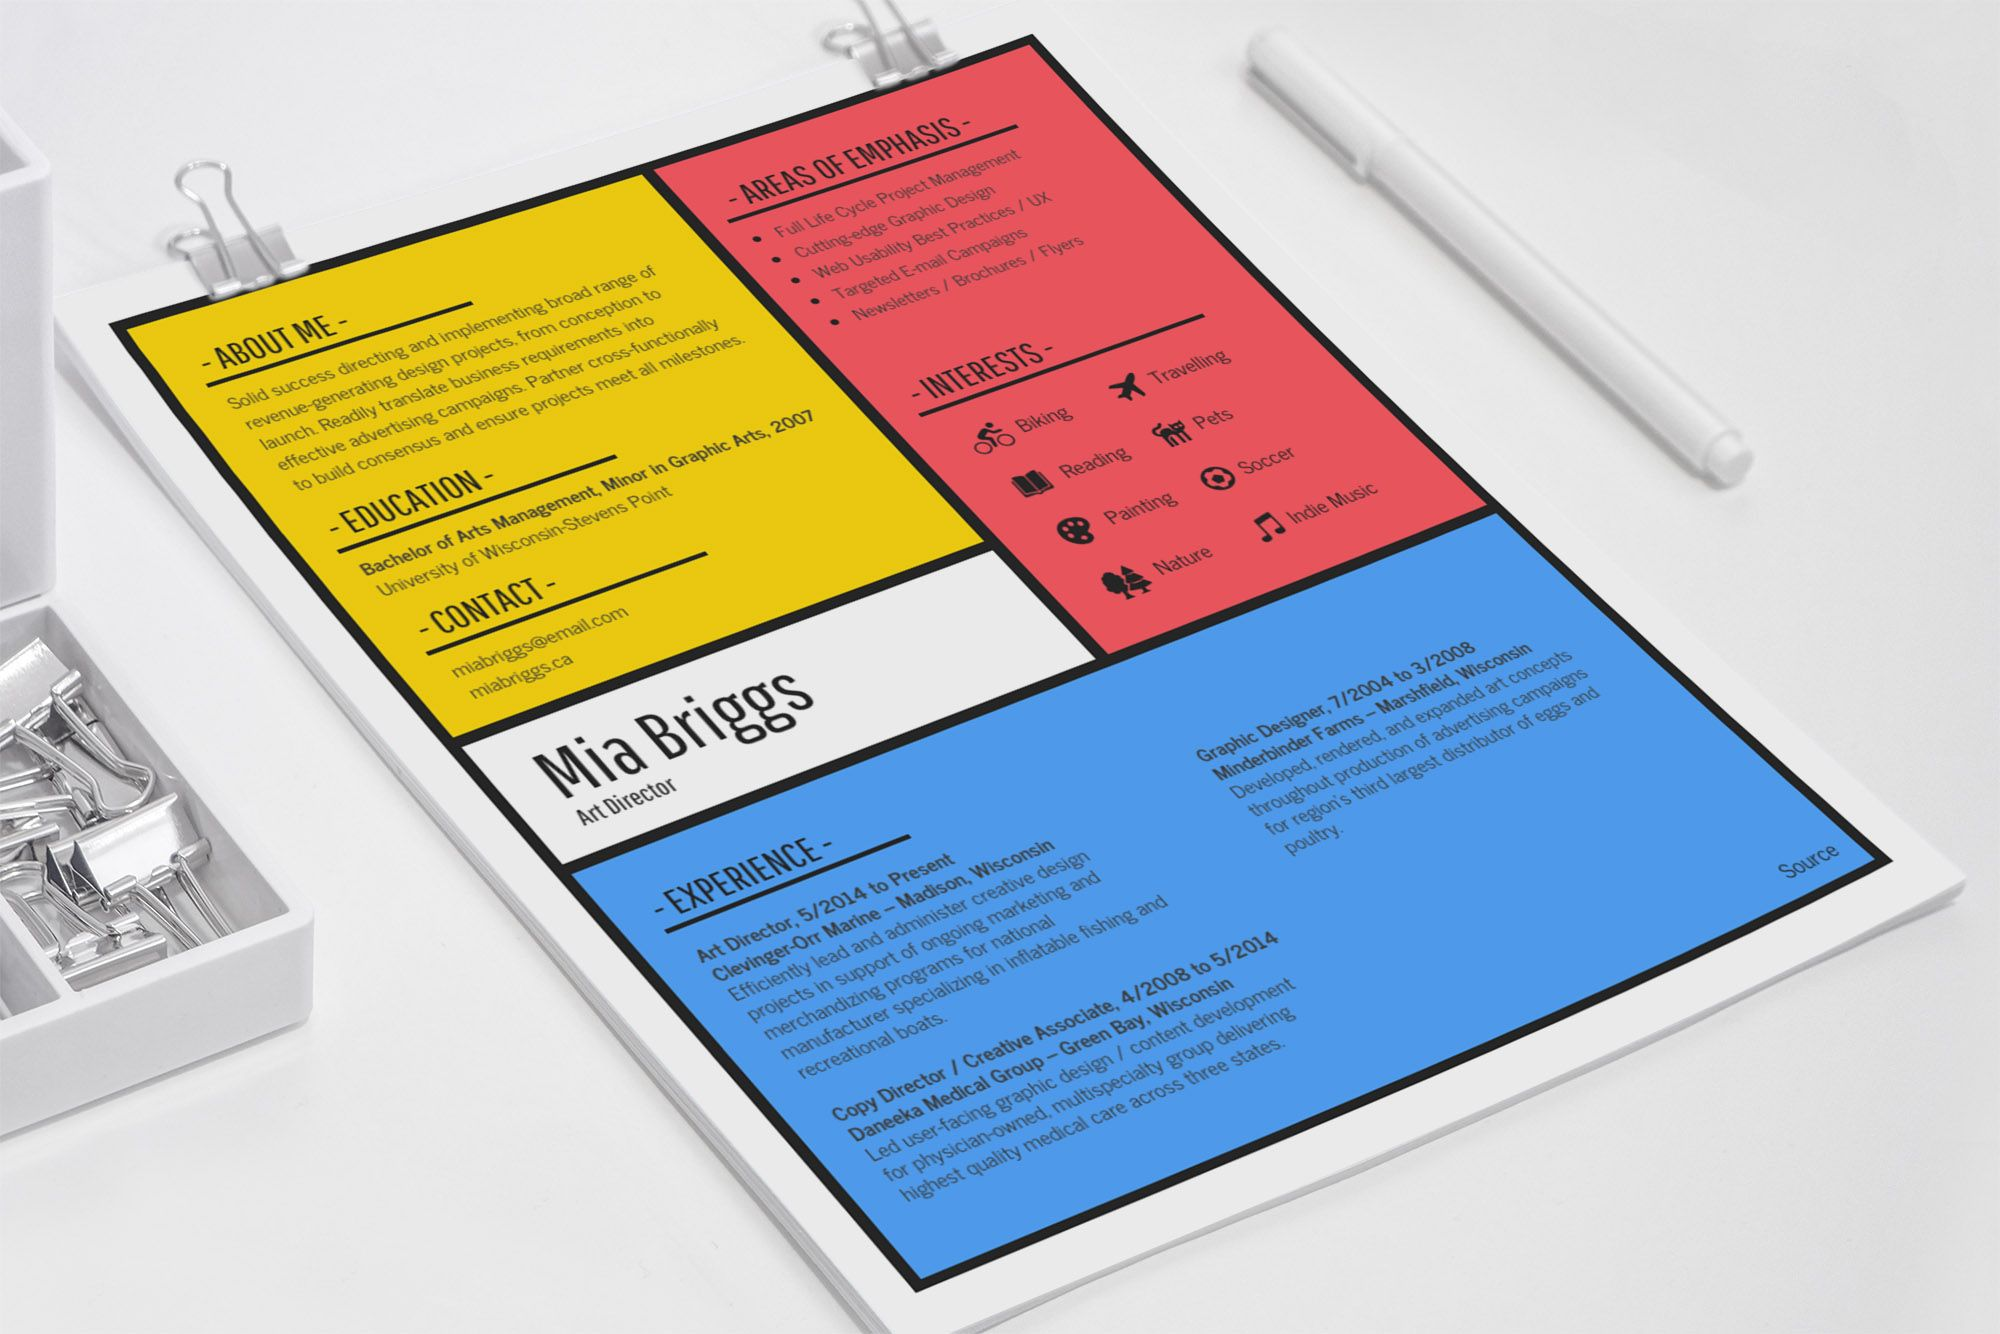 12+ Creative Resume Examples, Templates & Ideas   Daily Design Inspiration 28 - Creative resume, Resume design creative, Resume examples, Creative resume templates, Creative cv, Good resume examples - Need to upgrade your resume or CV  Check out some of these innovative and creative resume examples from a diverse group of designers!